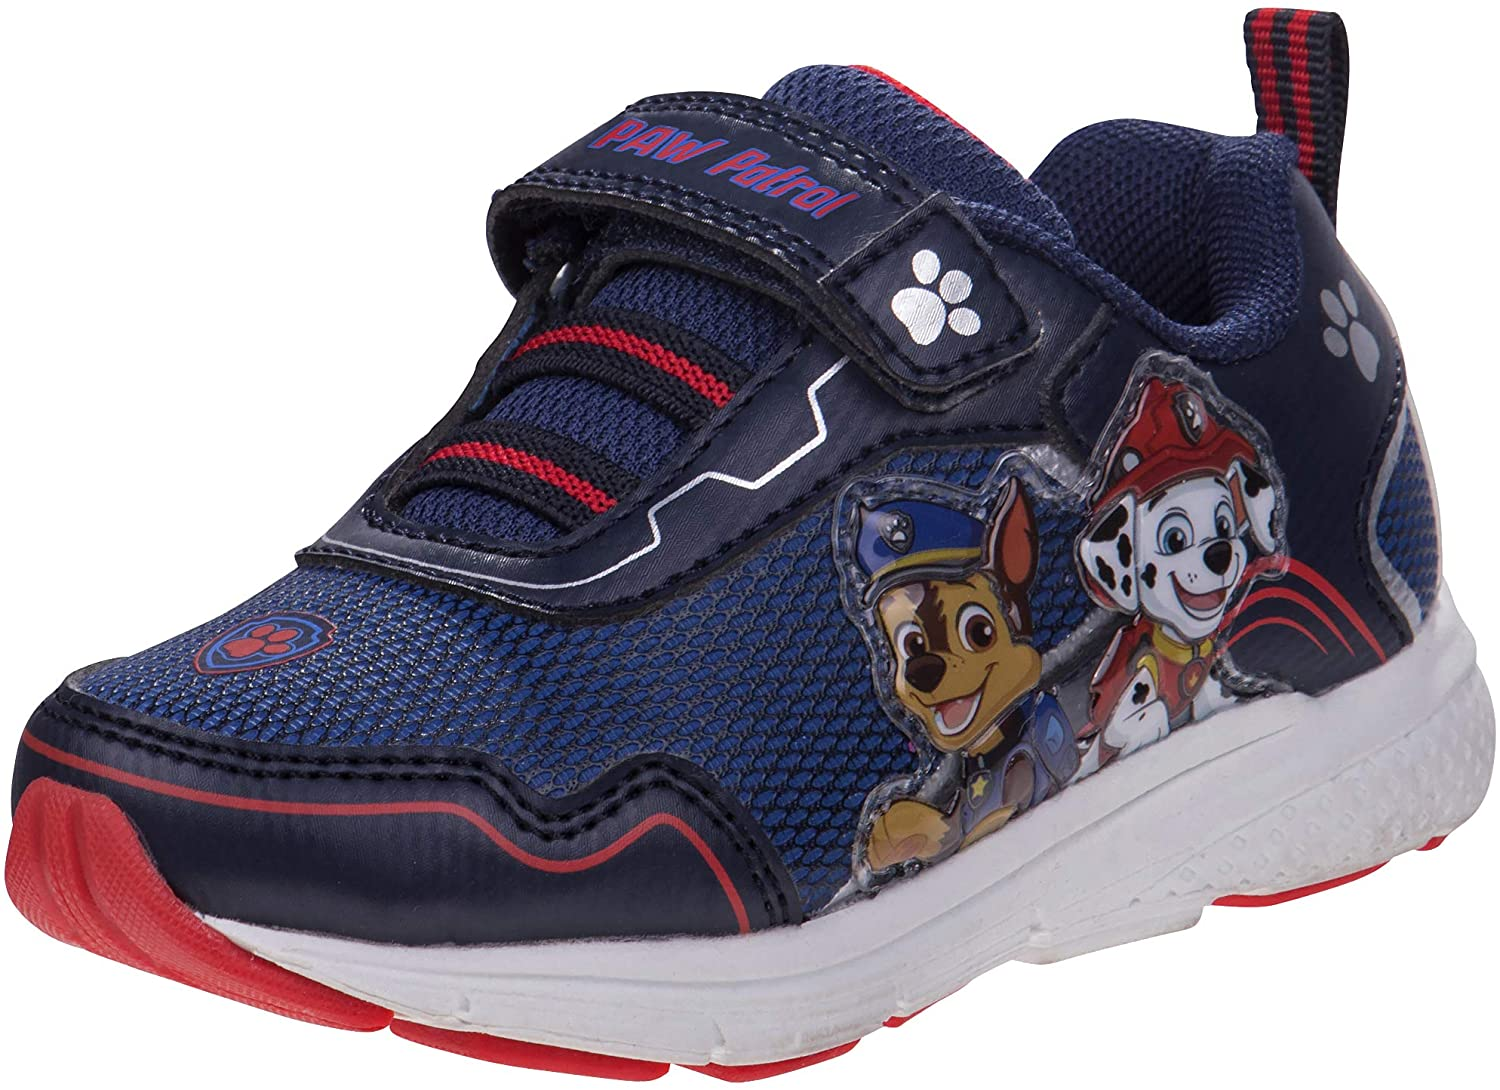 Josmo Boys Paw Patrol Lightweight Sneaker with Easy Strap Closure, Navy/Red Light Up, Size 8 Toddler